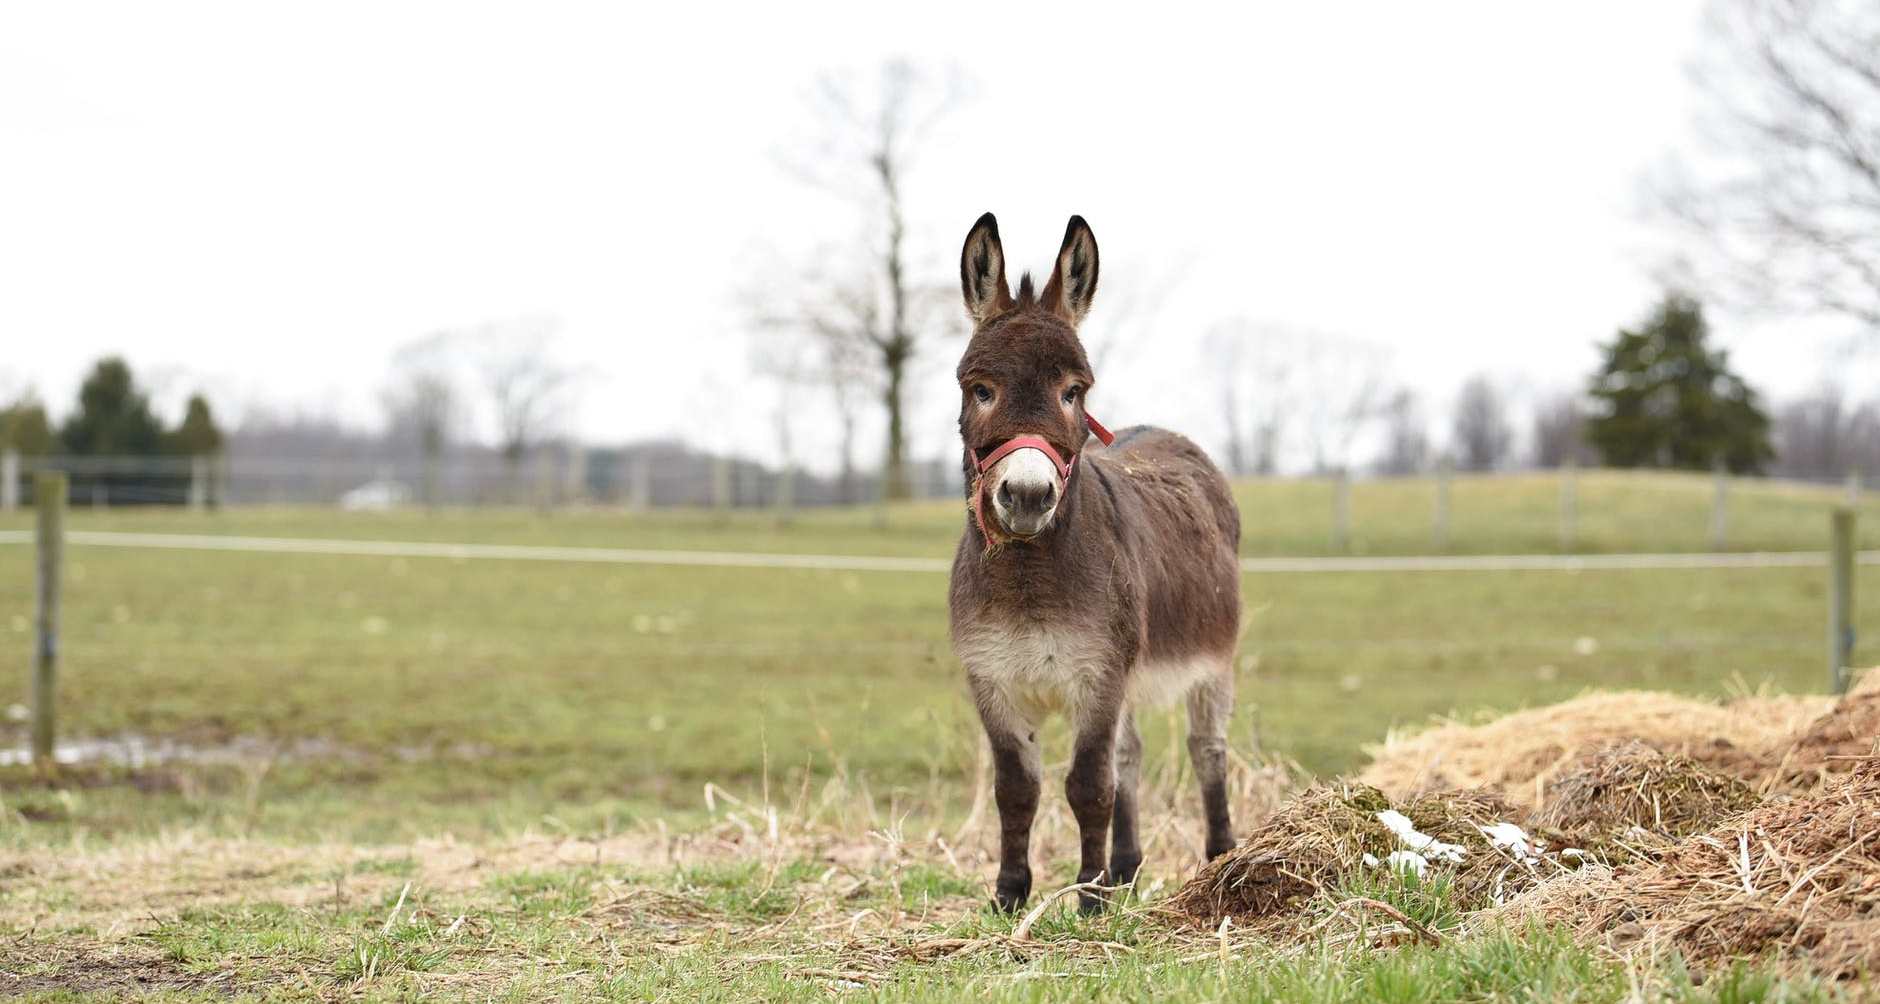 brown and white donkey on green grass field